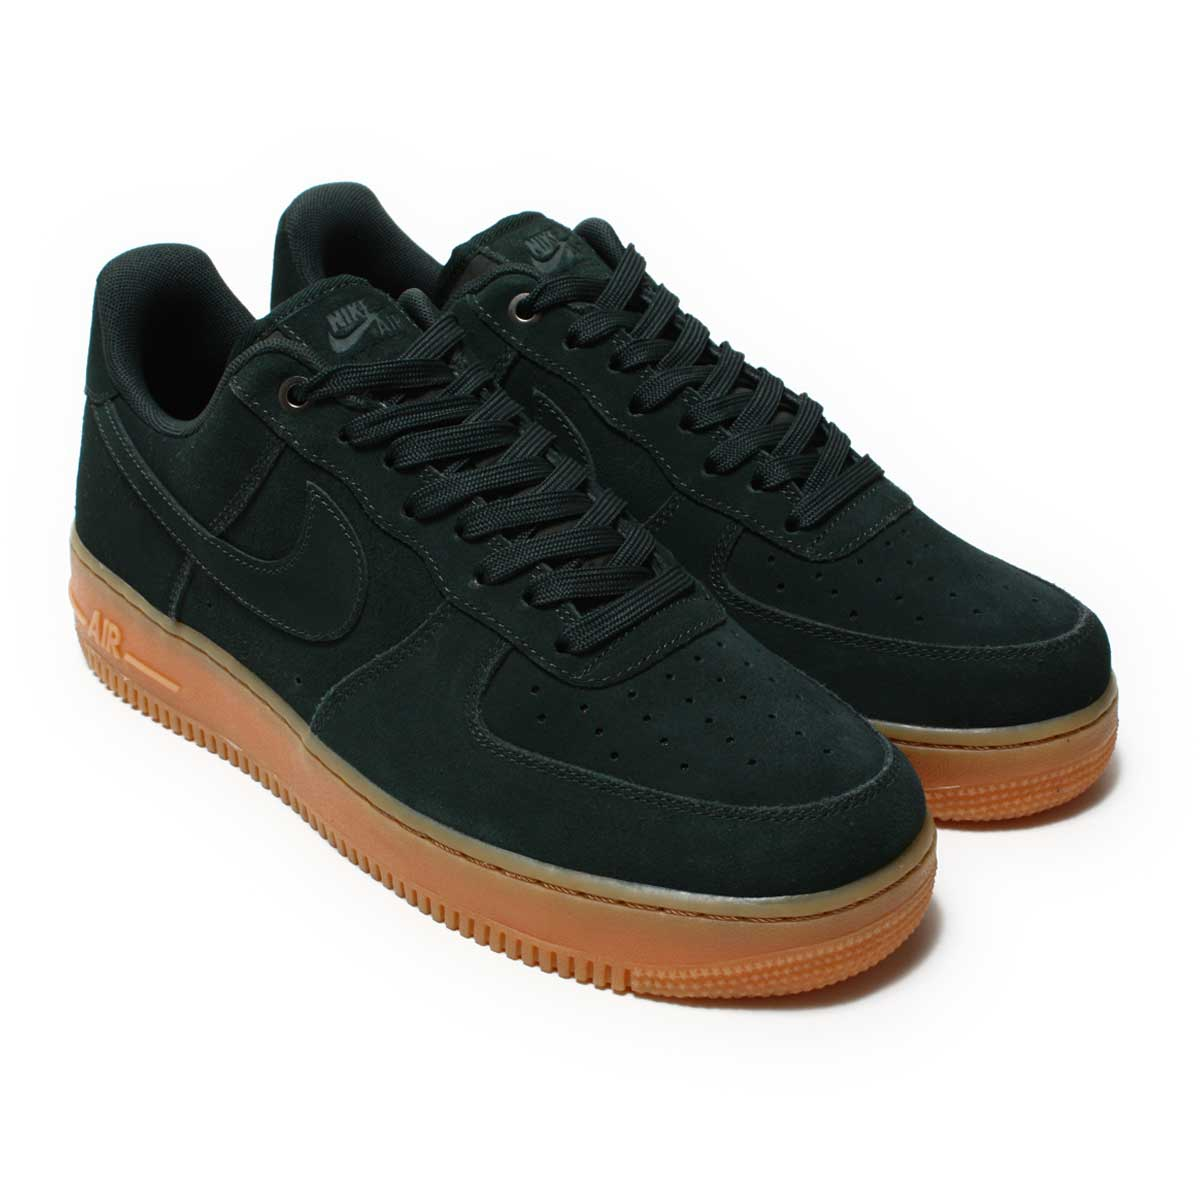 NIKE AIR FORCE 1 '07 LV8 SUEDE(ナイキ エア フォース 1 07 LV8 スエード)OUTDOOR GREEN/OUTDOOR GREEN【メンズ スニーカー】CRYOVR